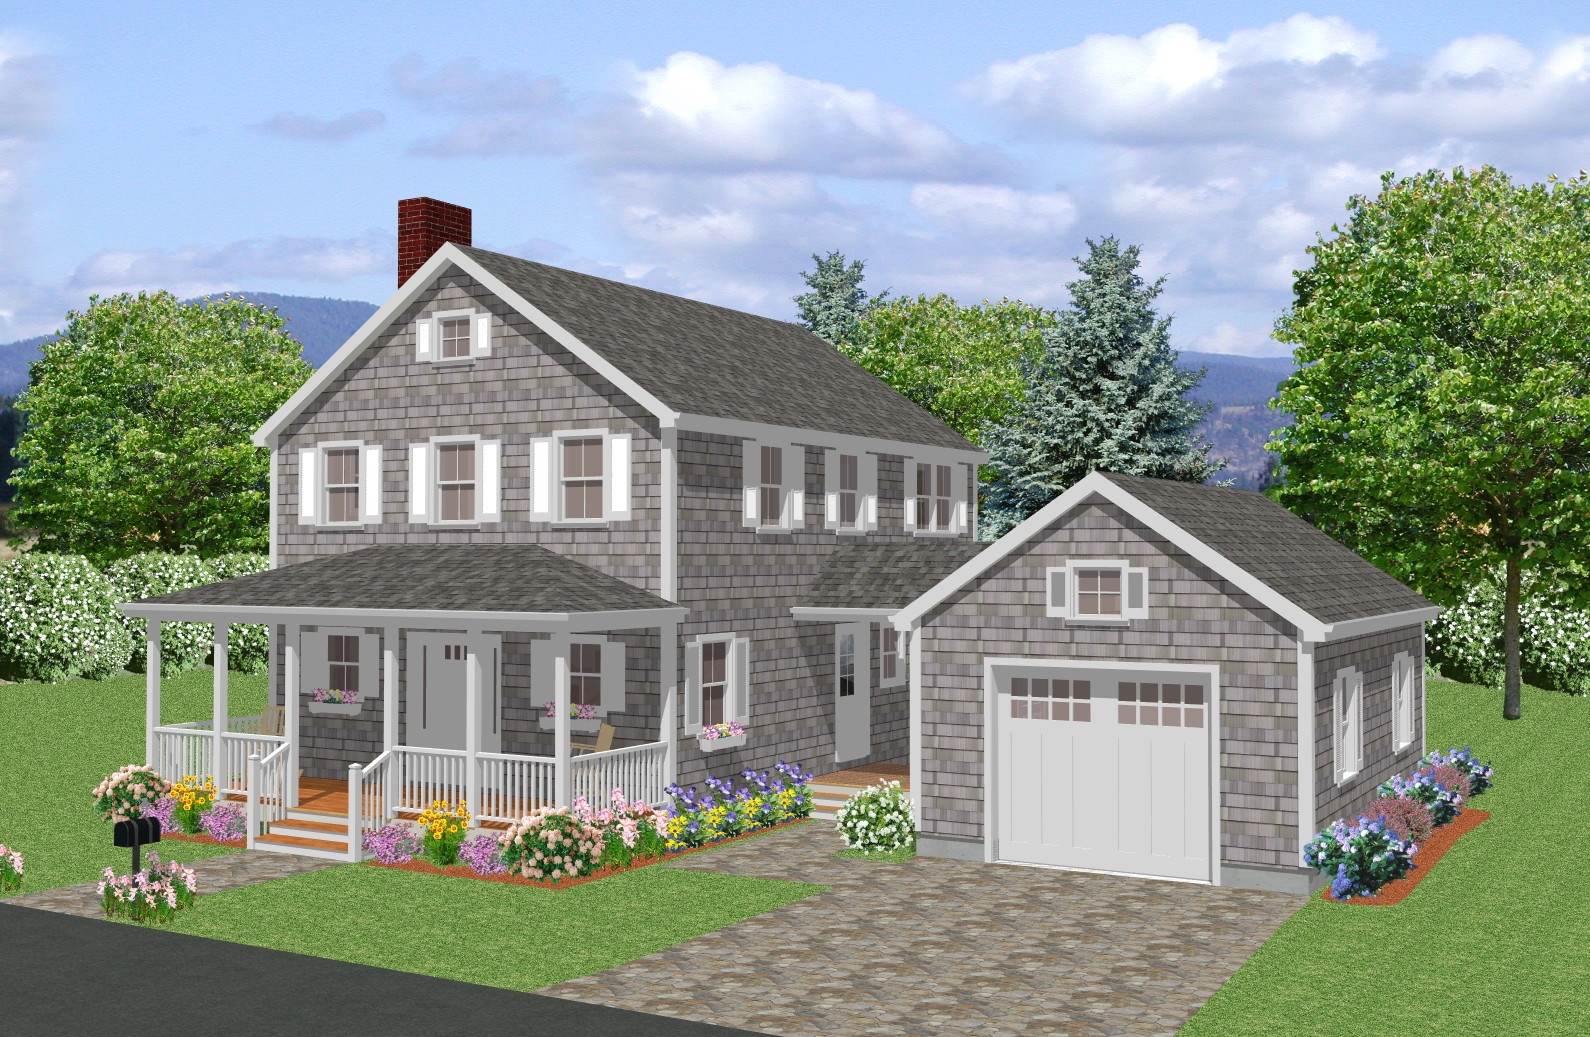 Architecture colonial houses in england for Newengland homes